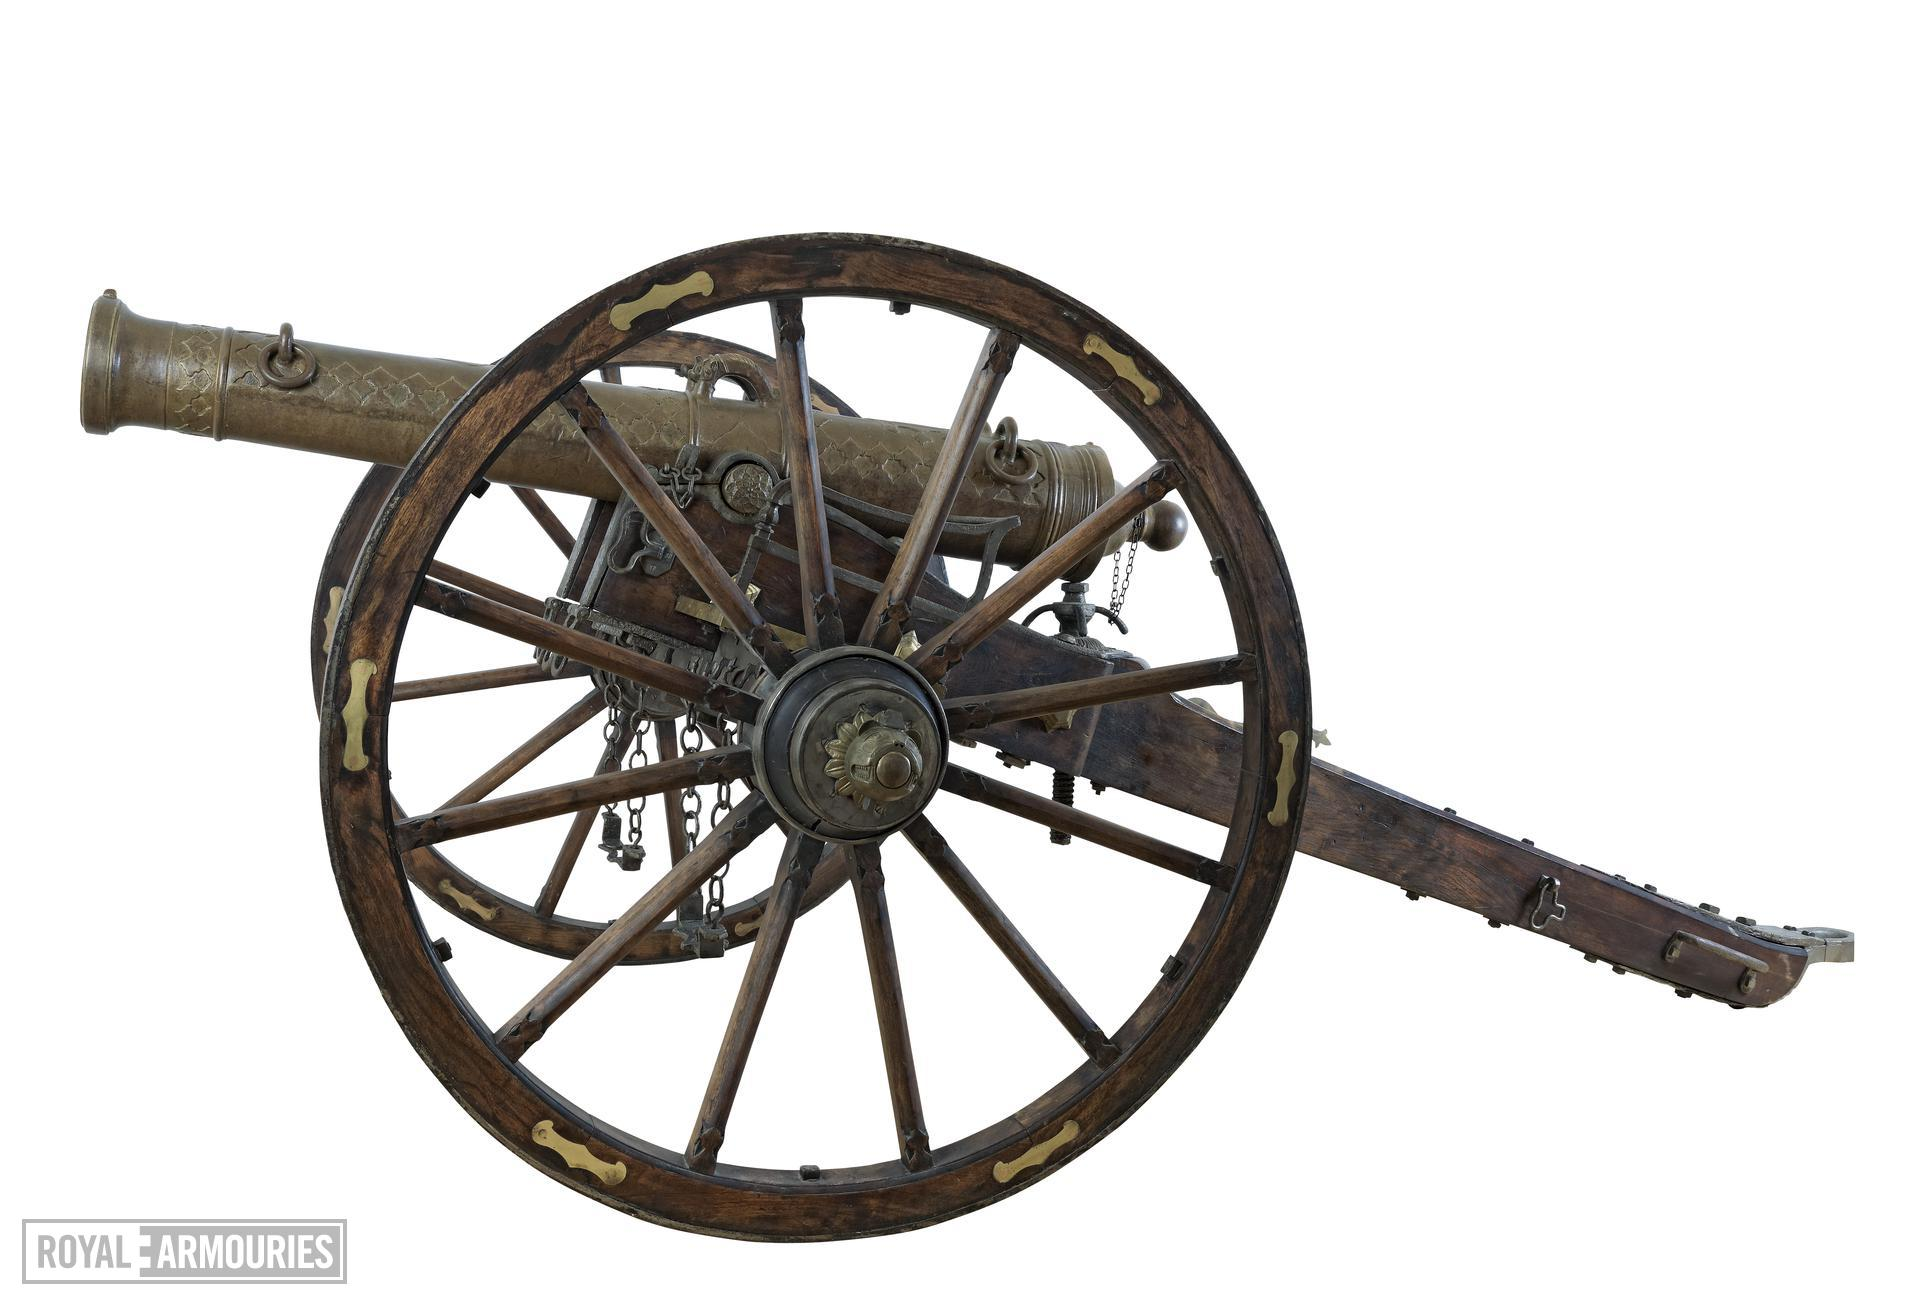 7 pr gun and field carriage Made of bronze Carriage, Indian (?), 19th century